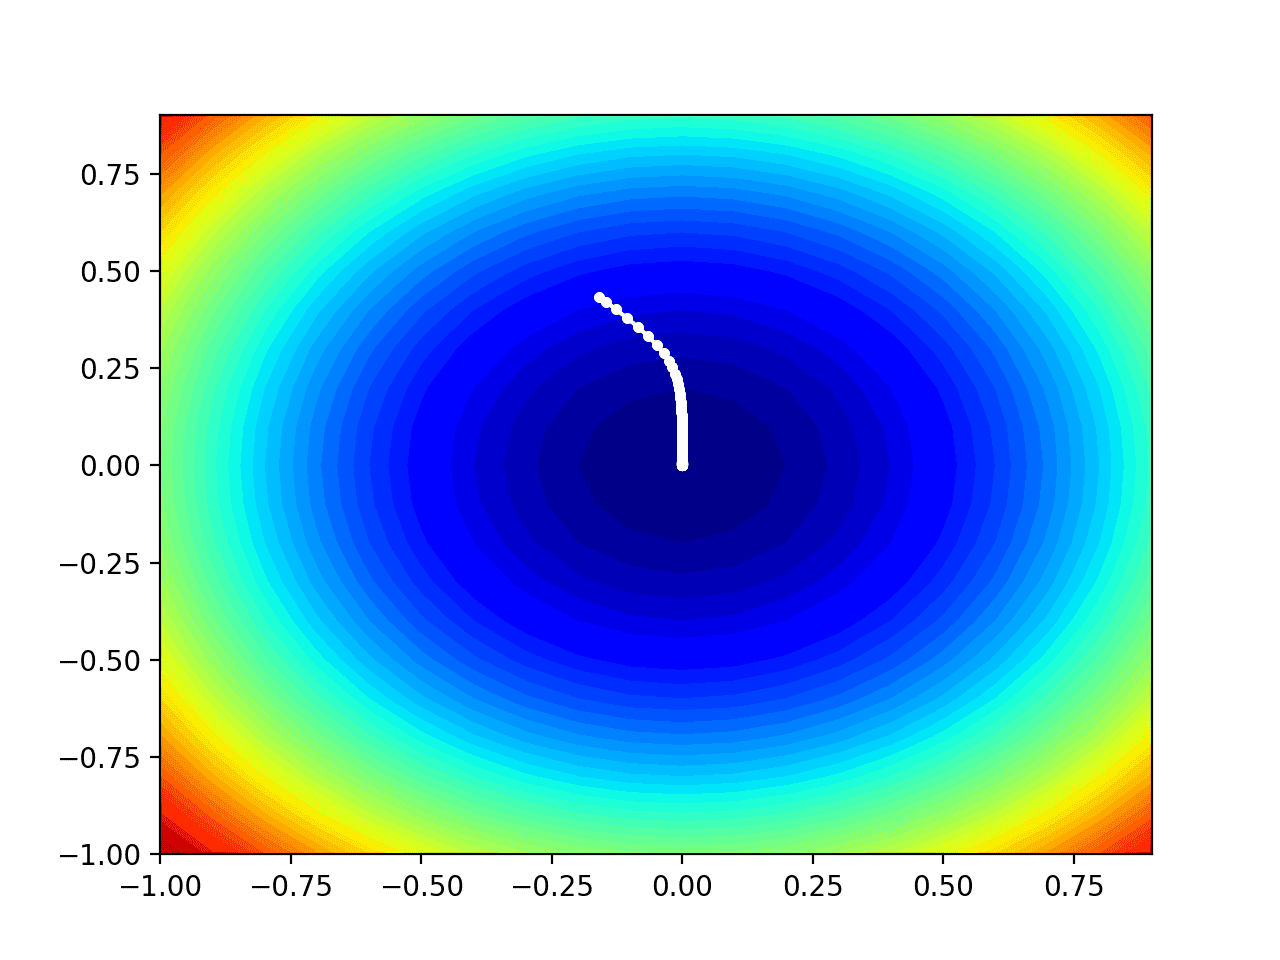 Contour Plot of the Test Objective Function With AMSGrad Search Results Shown